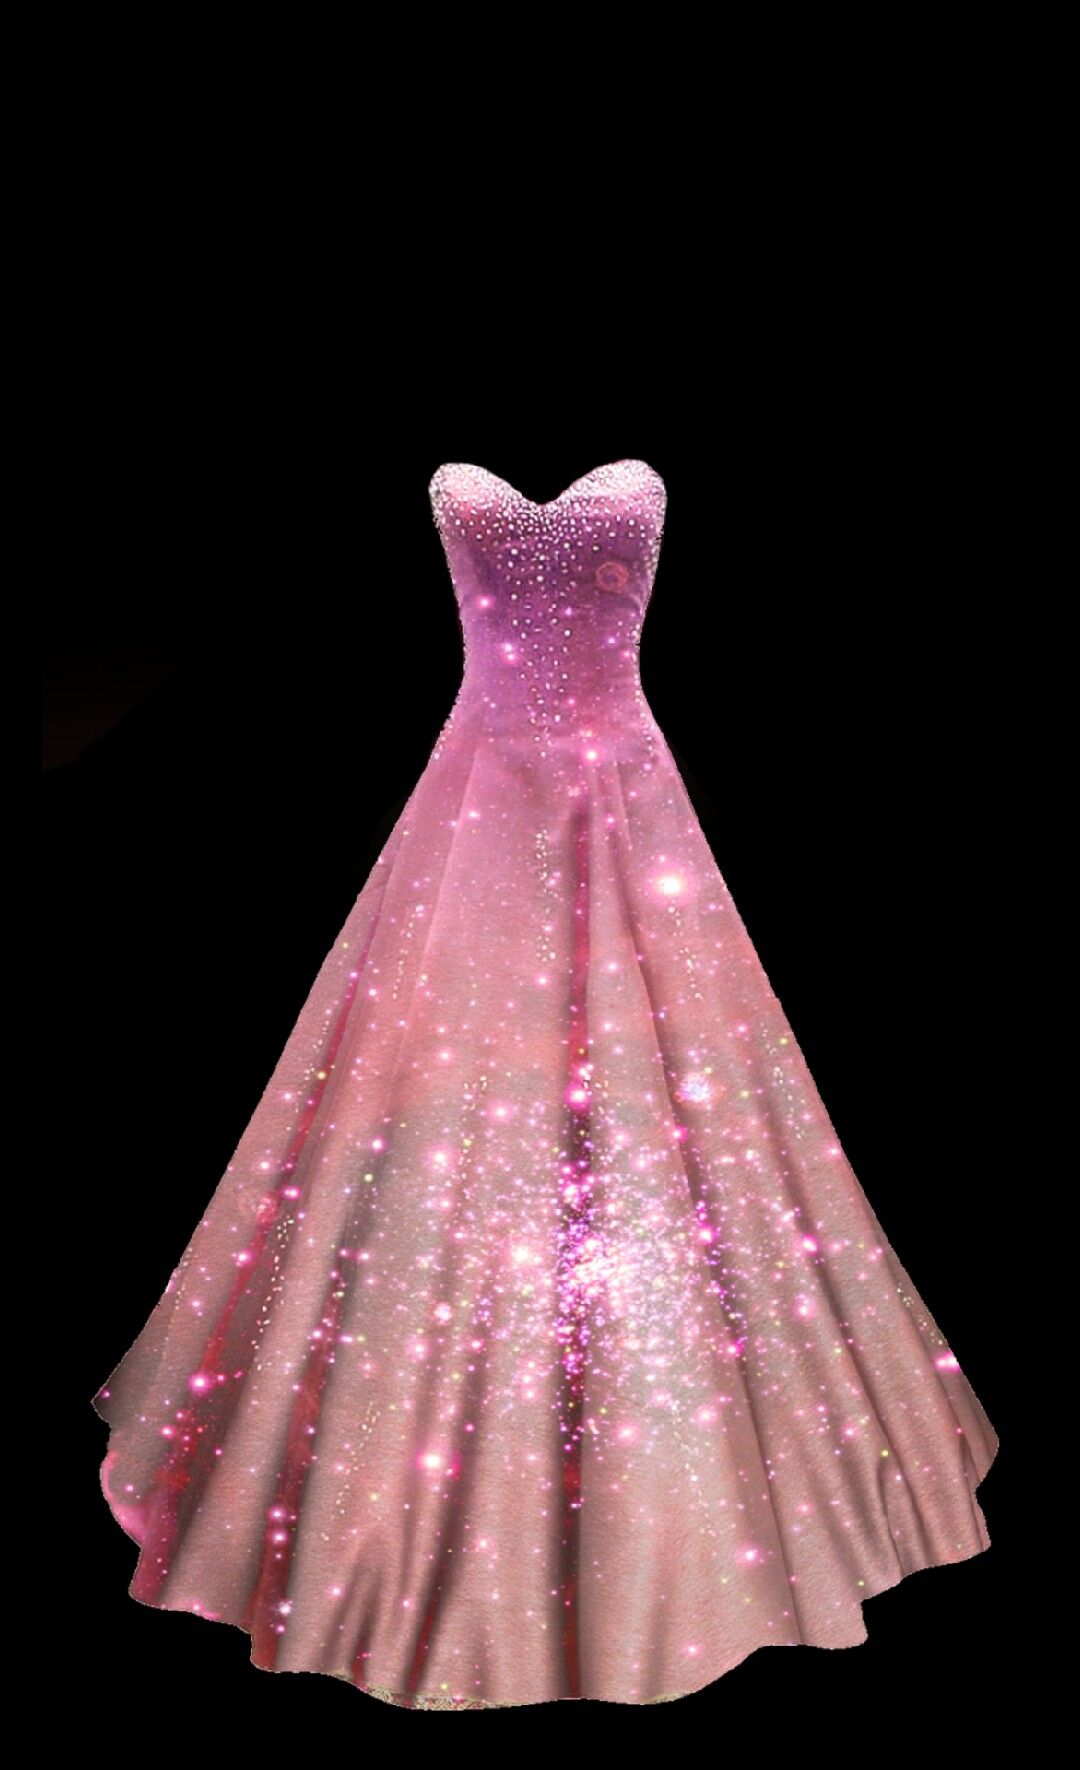 Pin By Susan Samuels On Nice Fashion Pretty Quinceanera Dresses Beautiful Prom Dresses Cute Dresses [ 1770 x 1080 Pixel ]